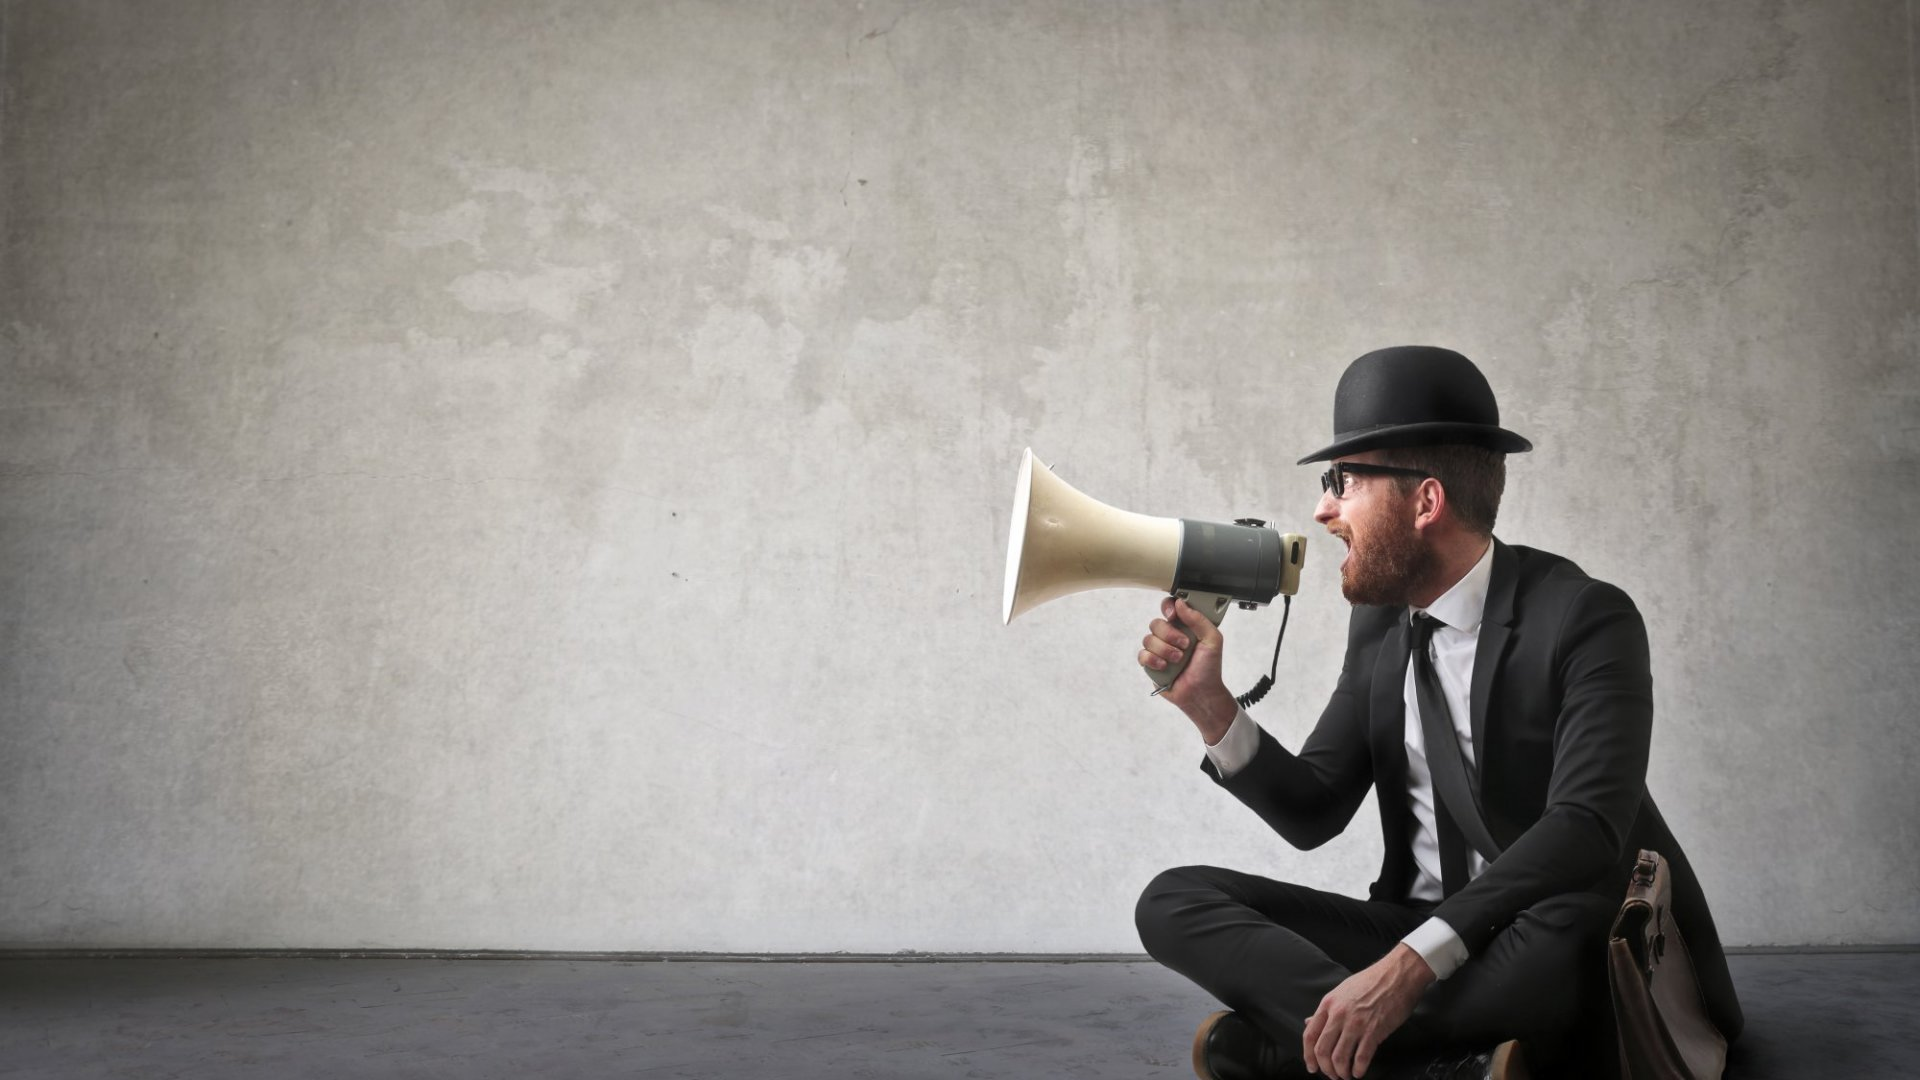 How To Communicate With Your Team More Effectively